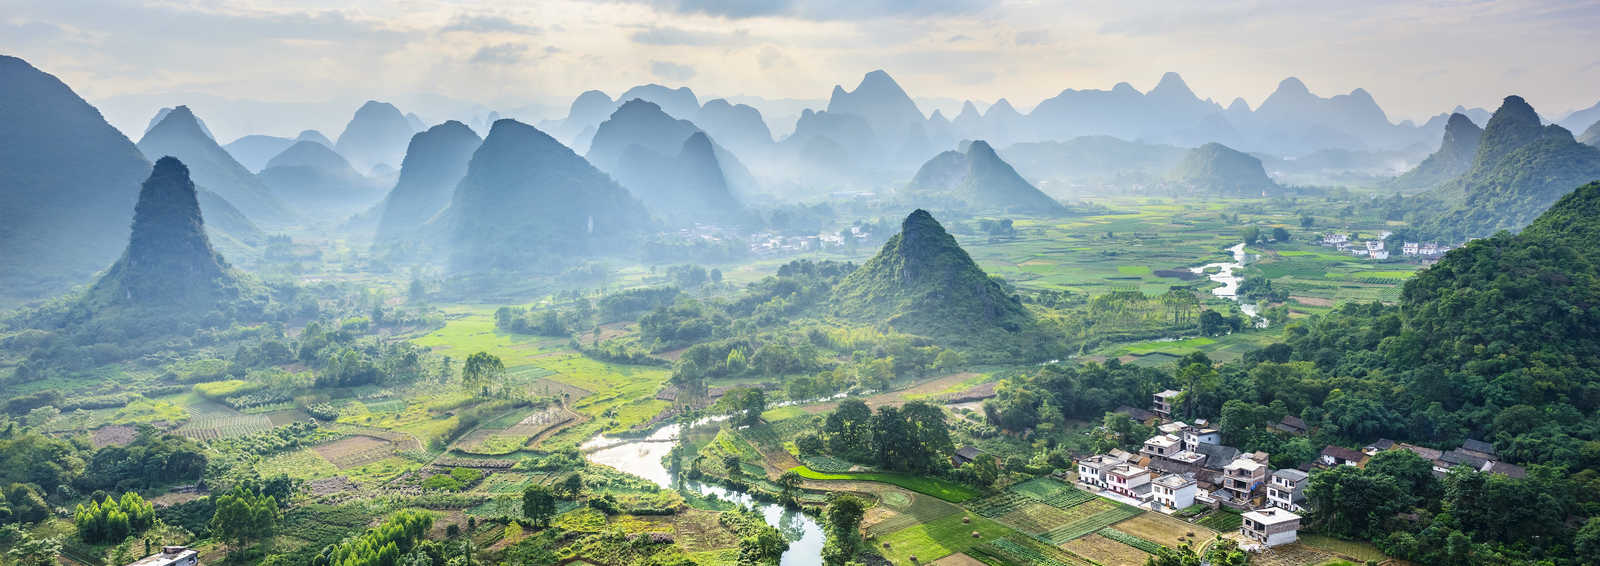 Yangshuo landscape, China